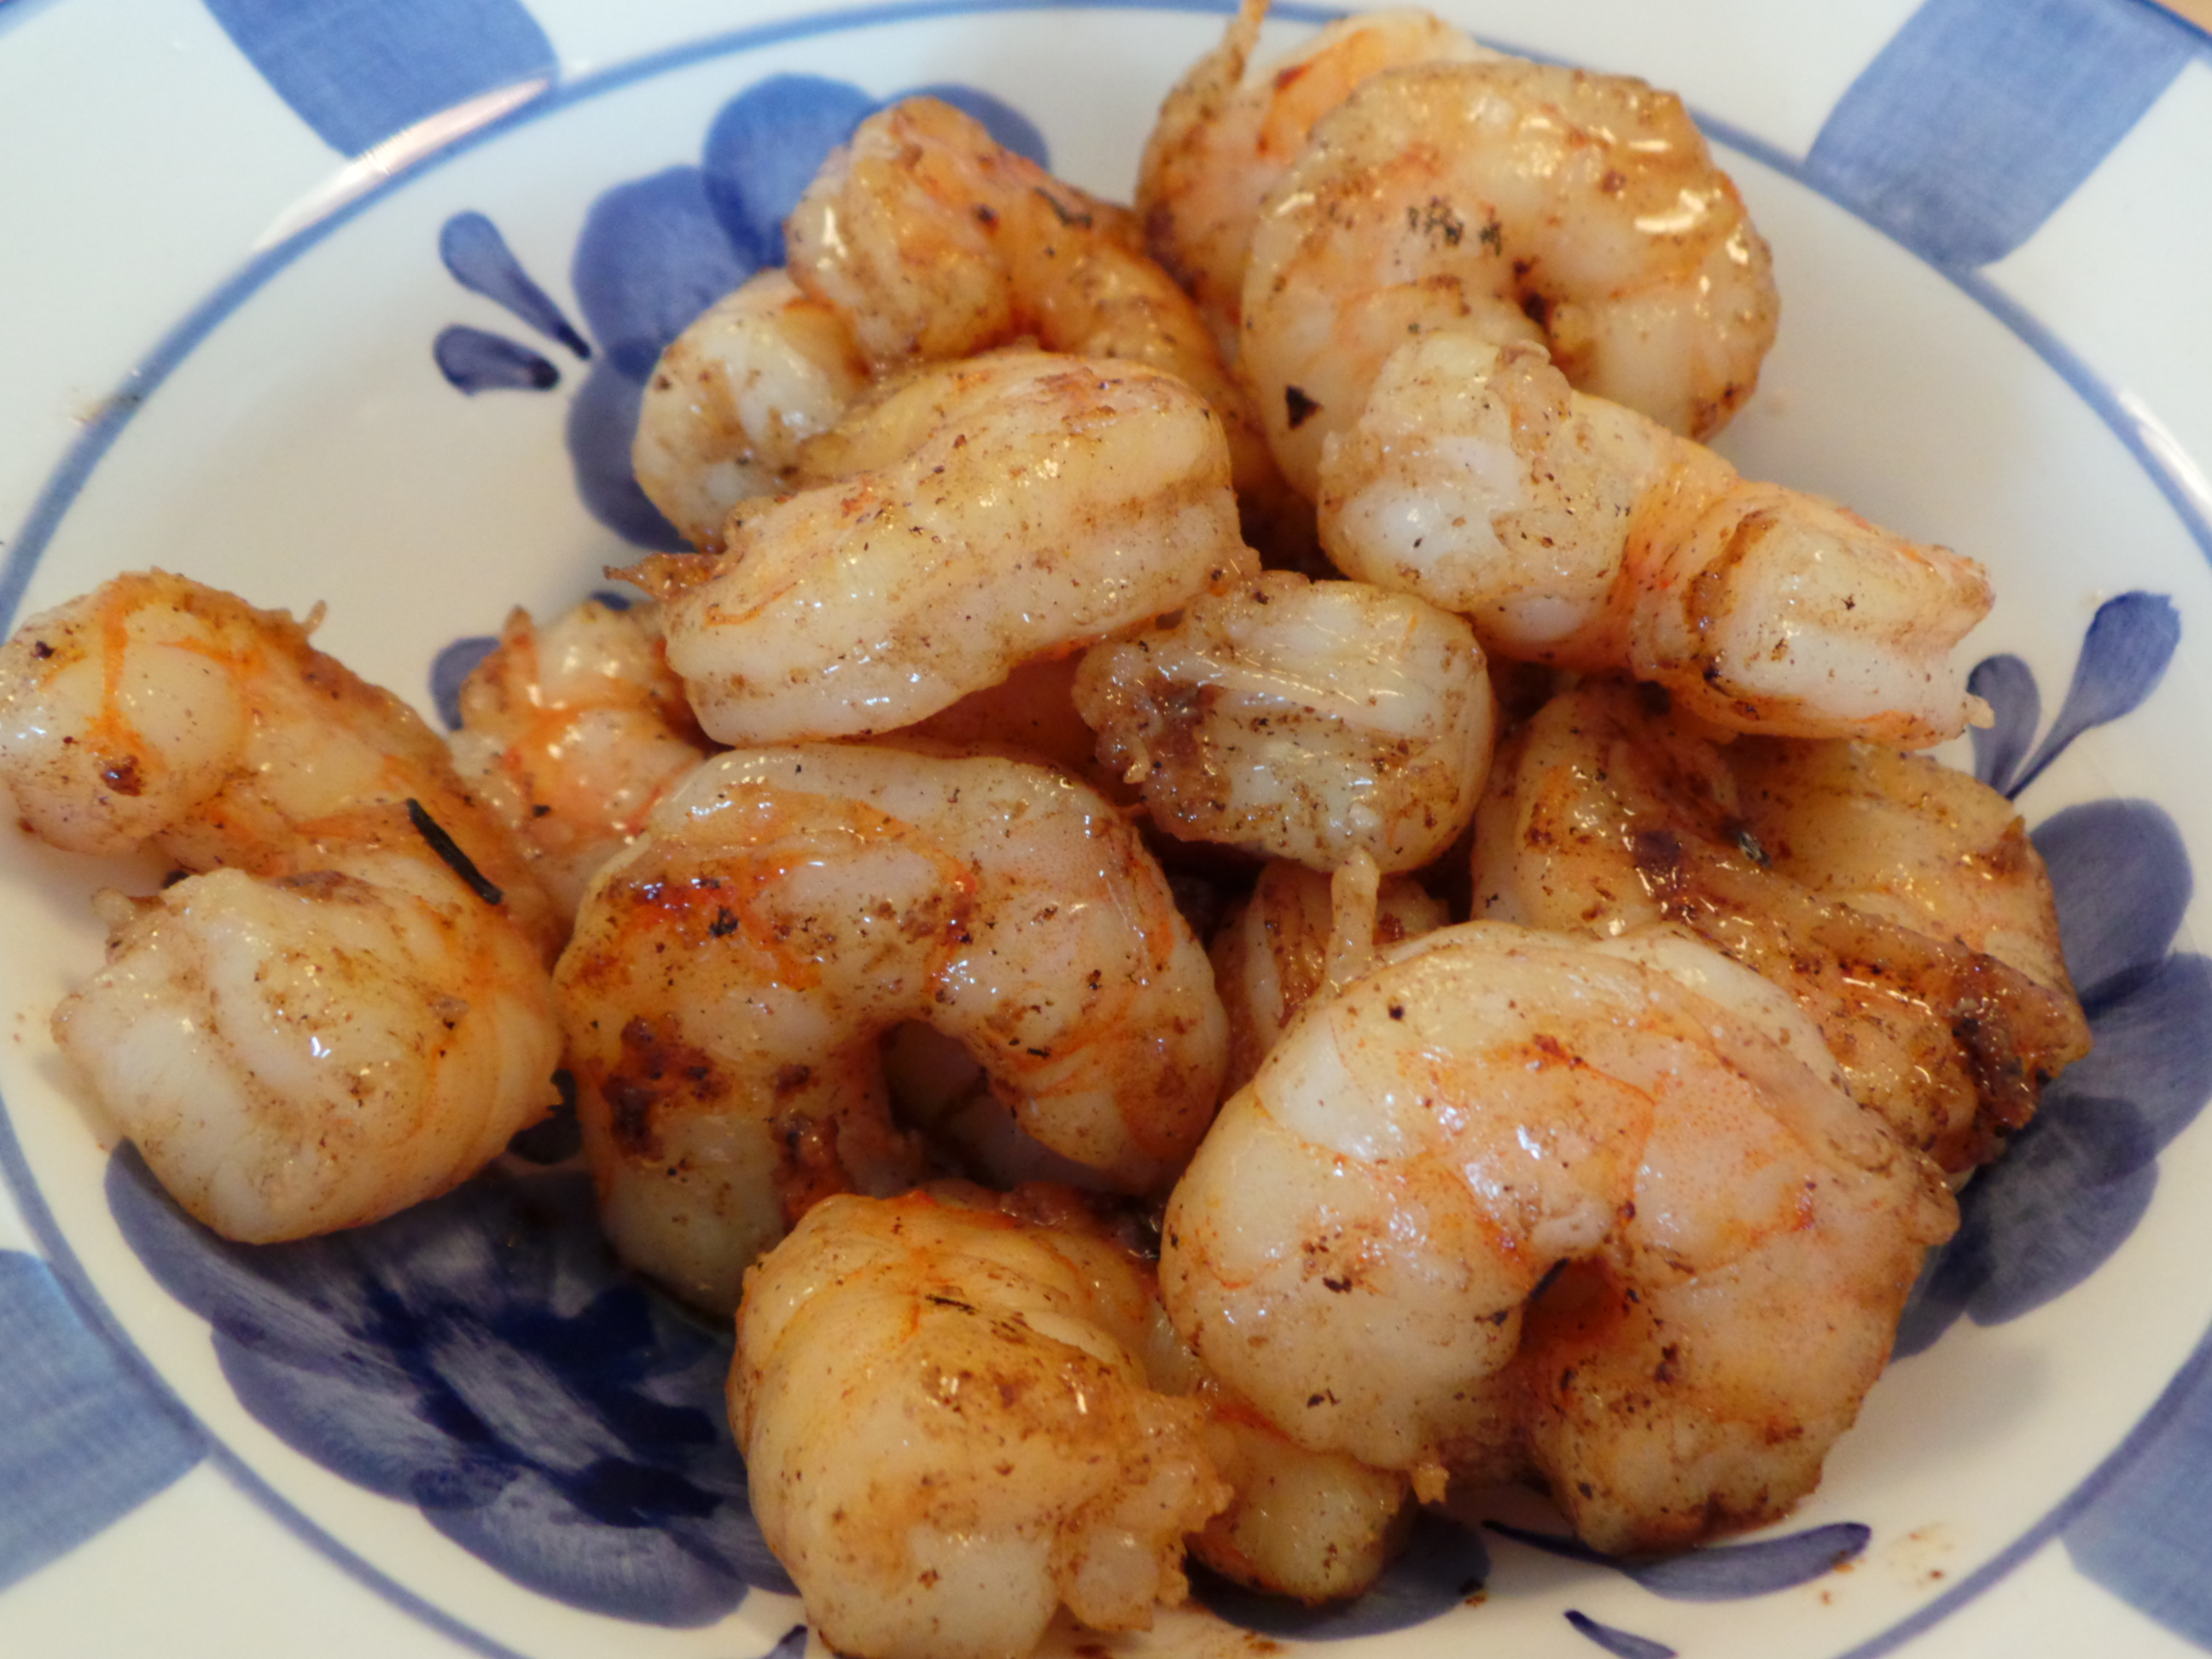 Sauteéd Shrimp and Soba Noodles - My Judy the Foodie